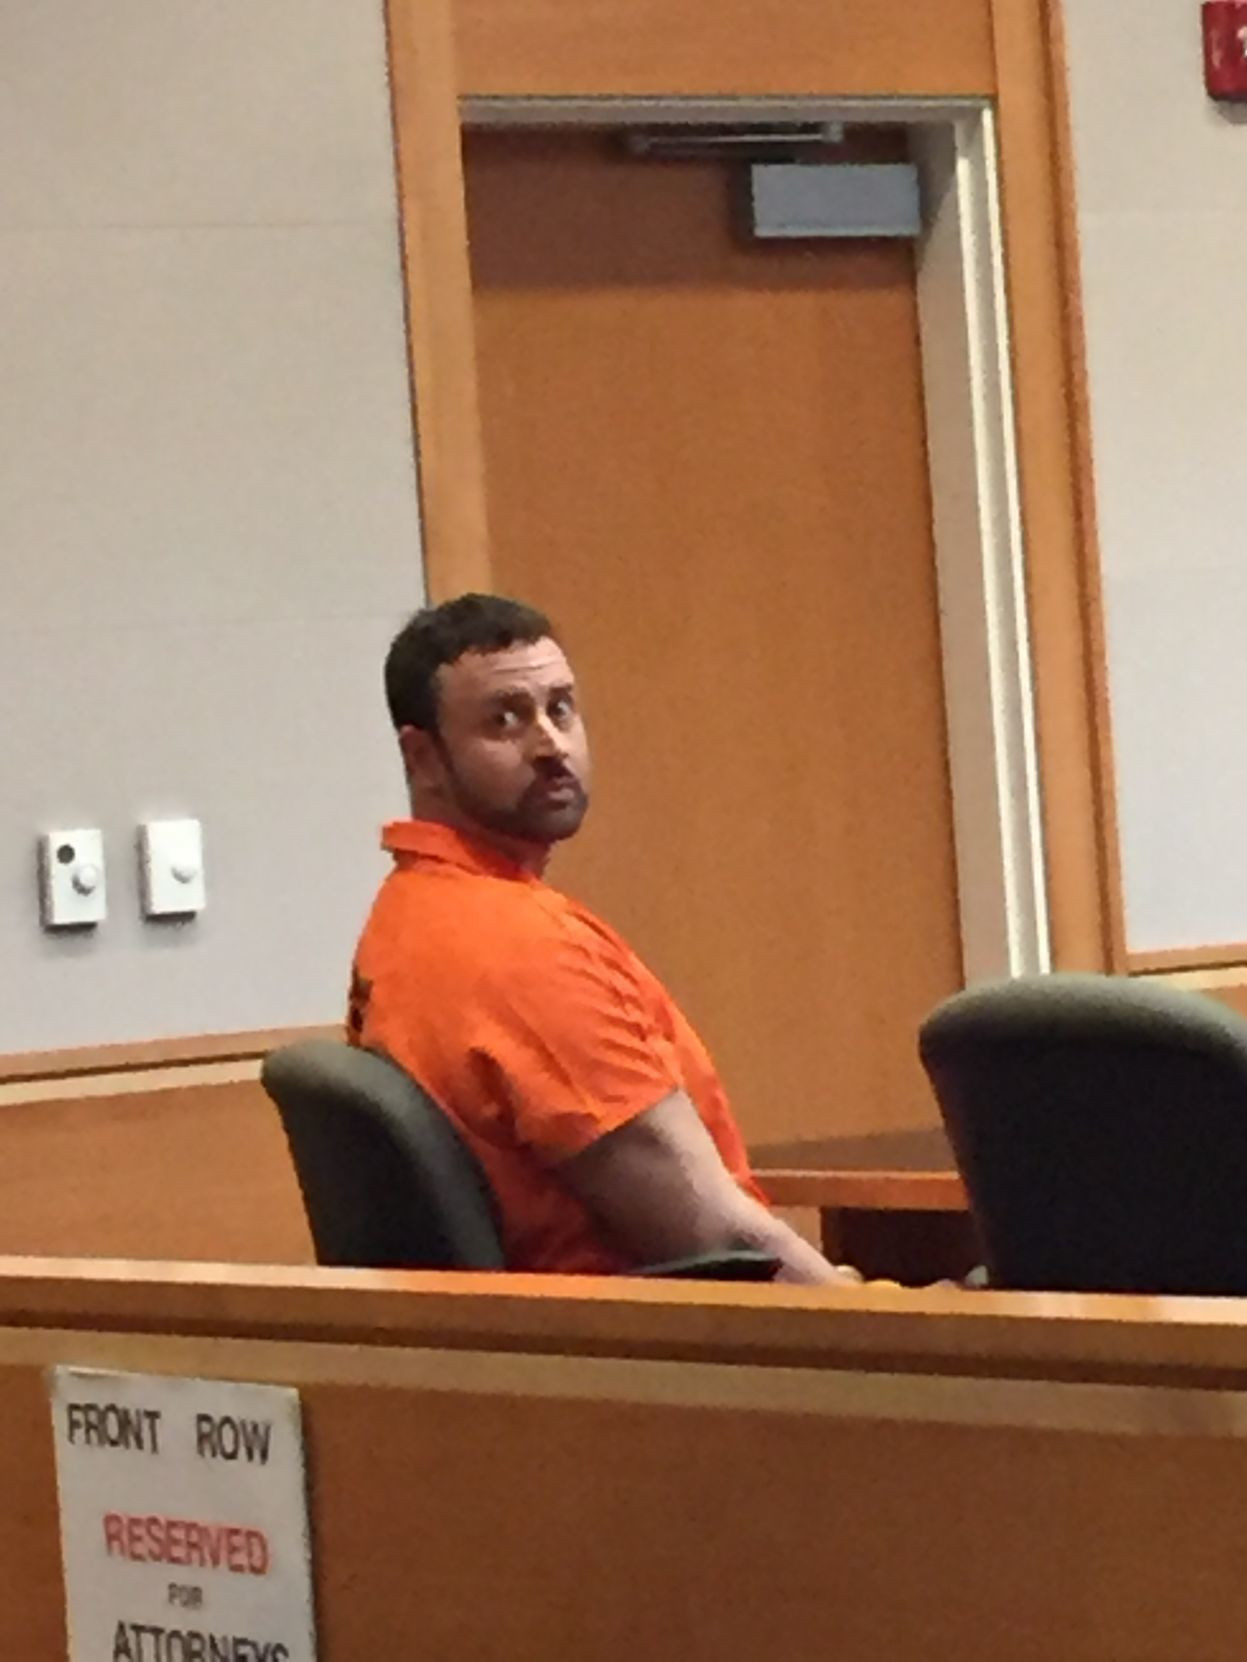 Winslow in court